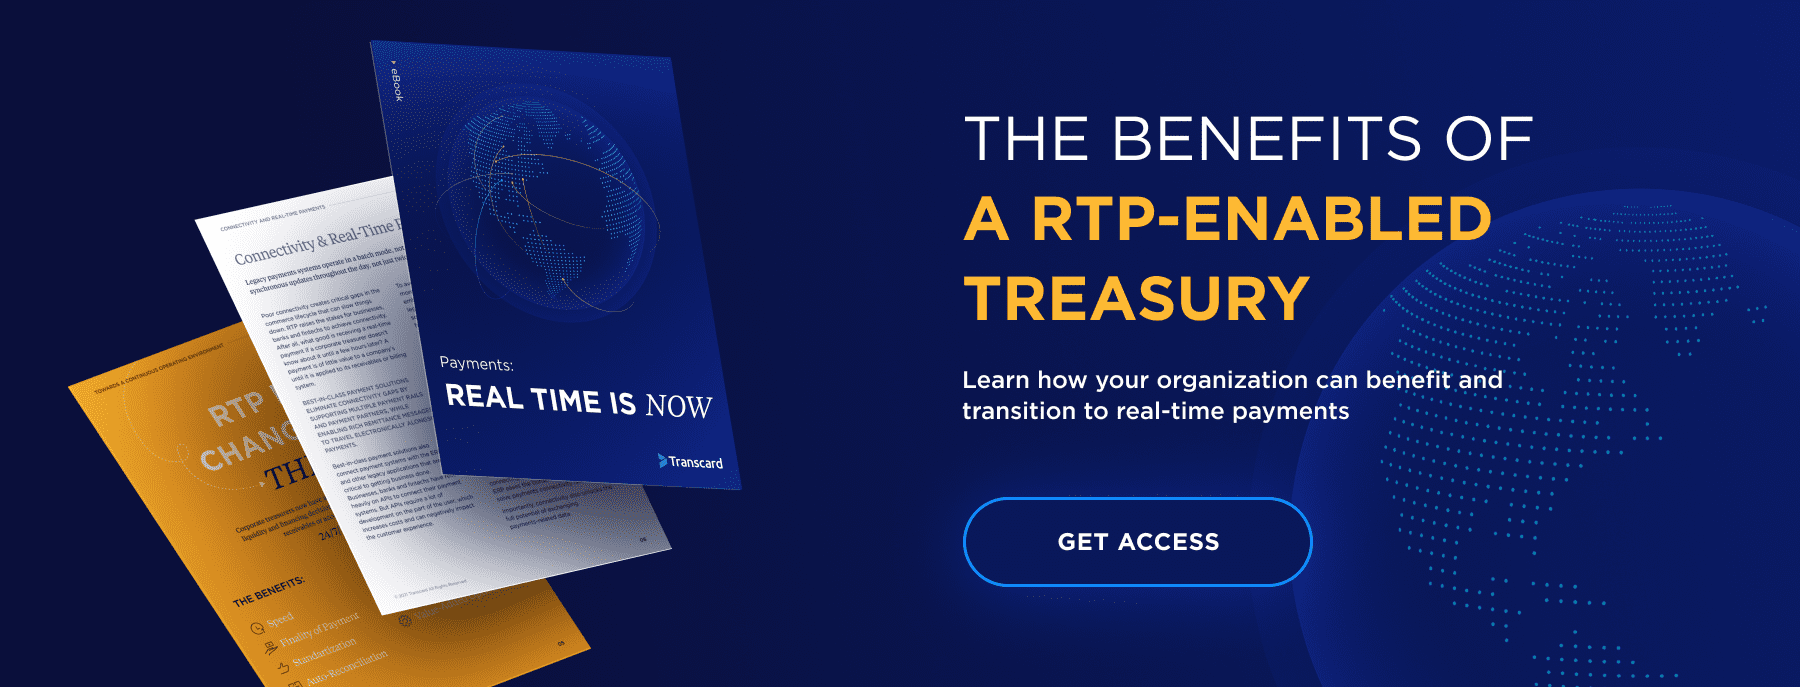 benefits-rtp-treasury